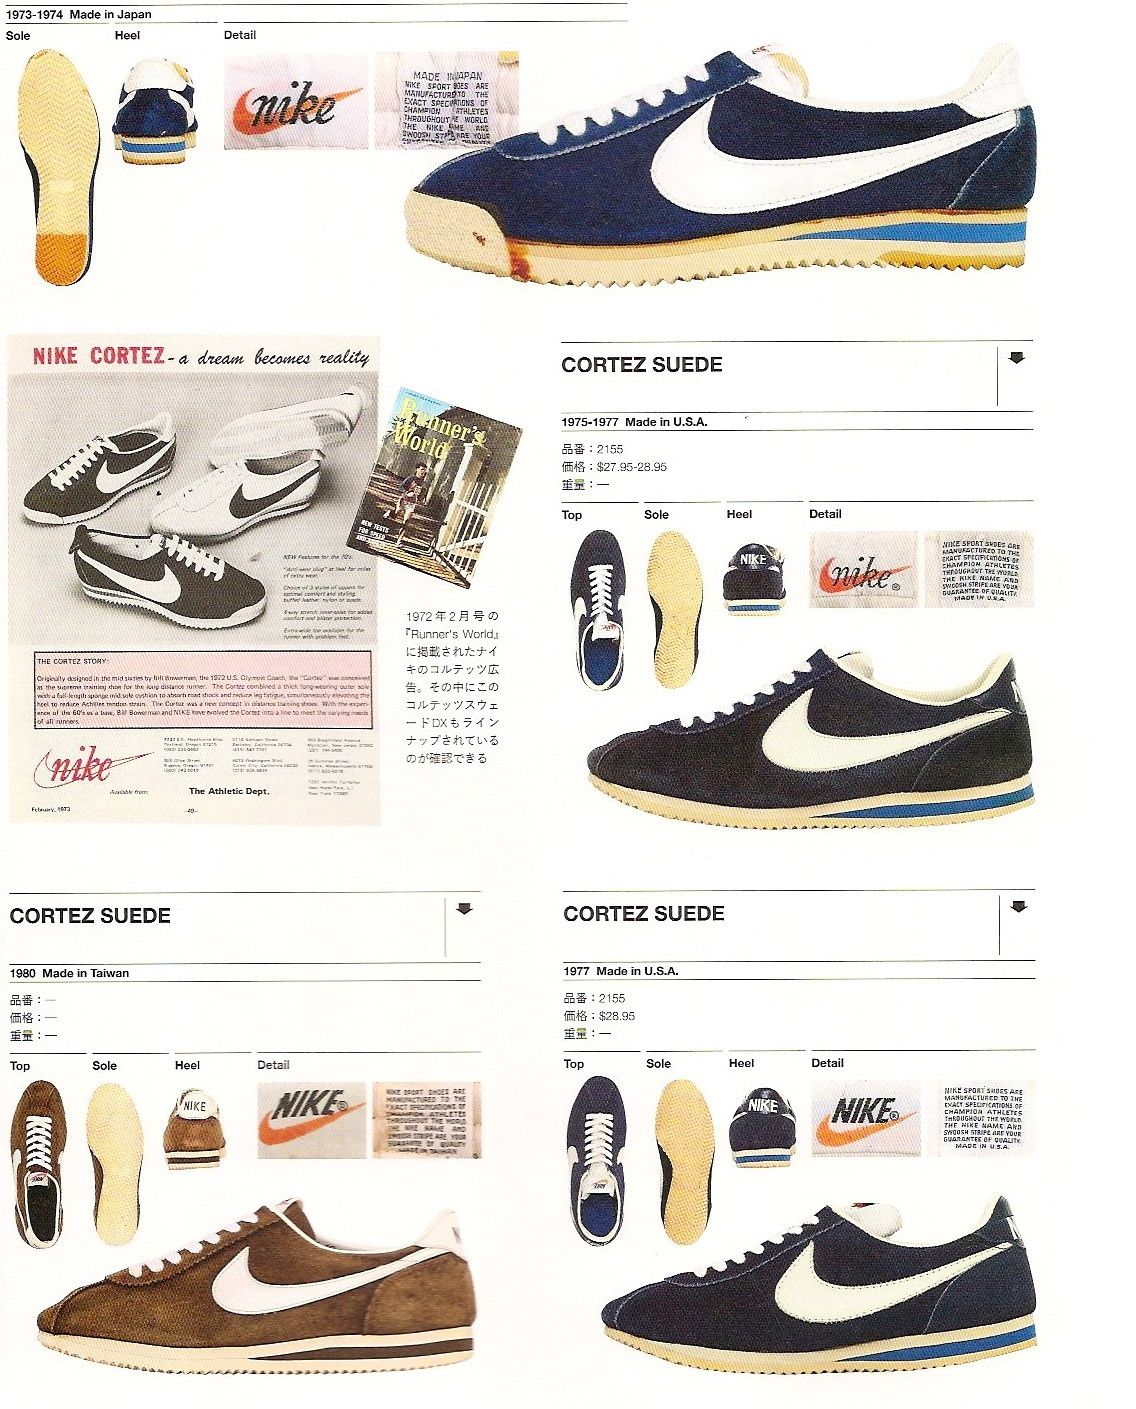 sports shoes 38c5b 2fb5a vintage nike cortez suede 1973-1980 | 1980 NOVEL plotline pics in ...